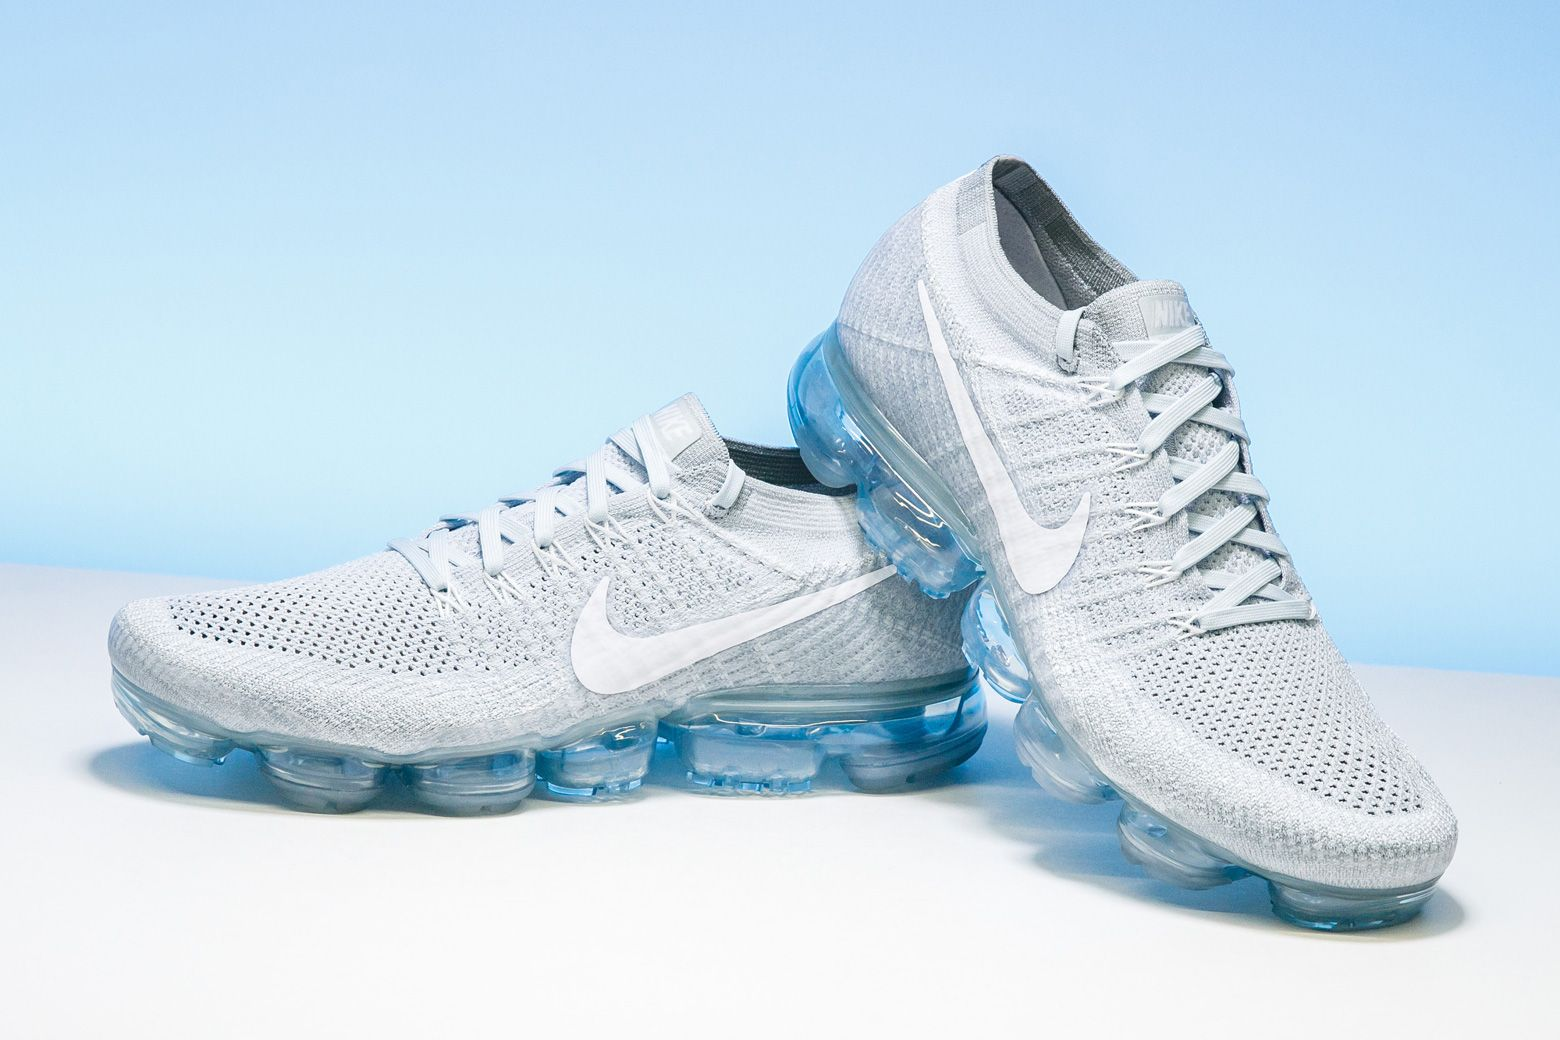 Nike Air Vapormax Flyknit 849558 004 | Nike, Stylish